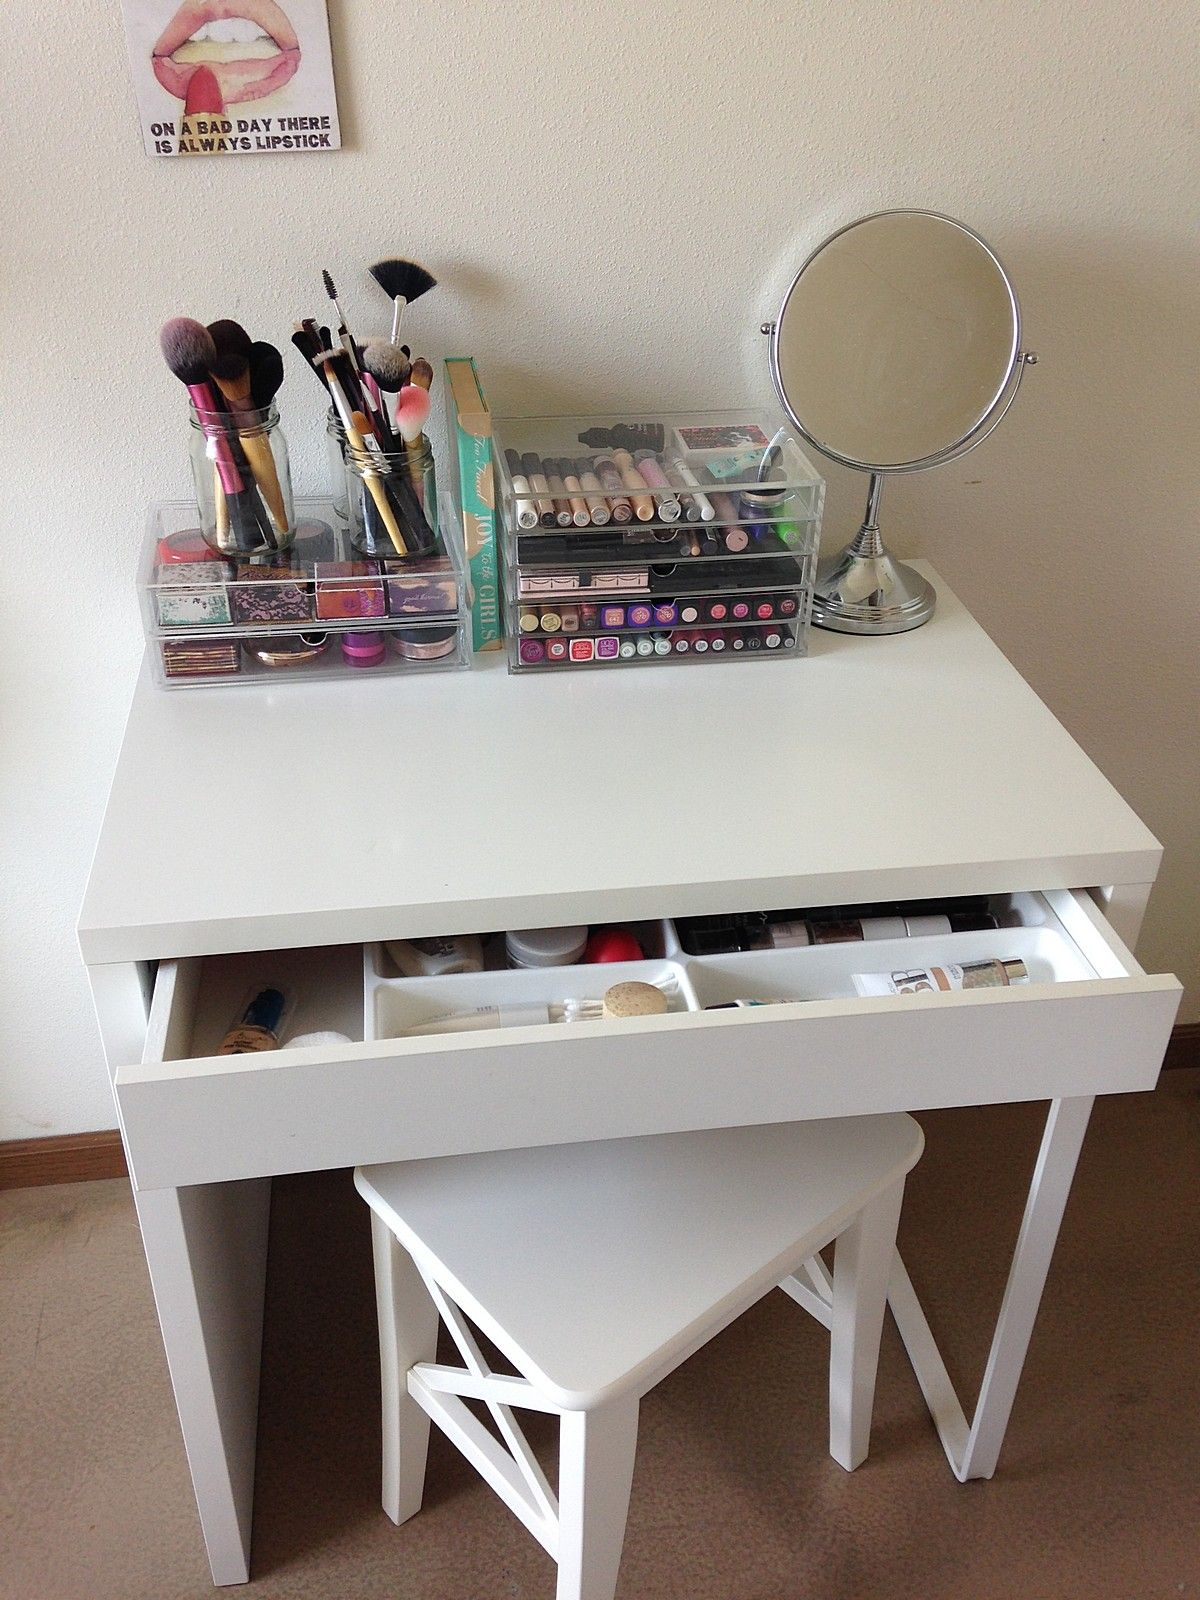 Ikea Micke As Vanity Desk Dressing Table White Diy Makeup Vanity Table Small Makeup Vanities Ikea Vanity